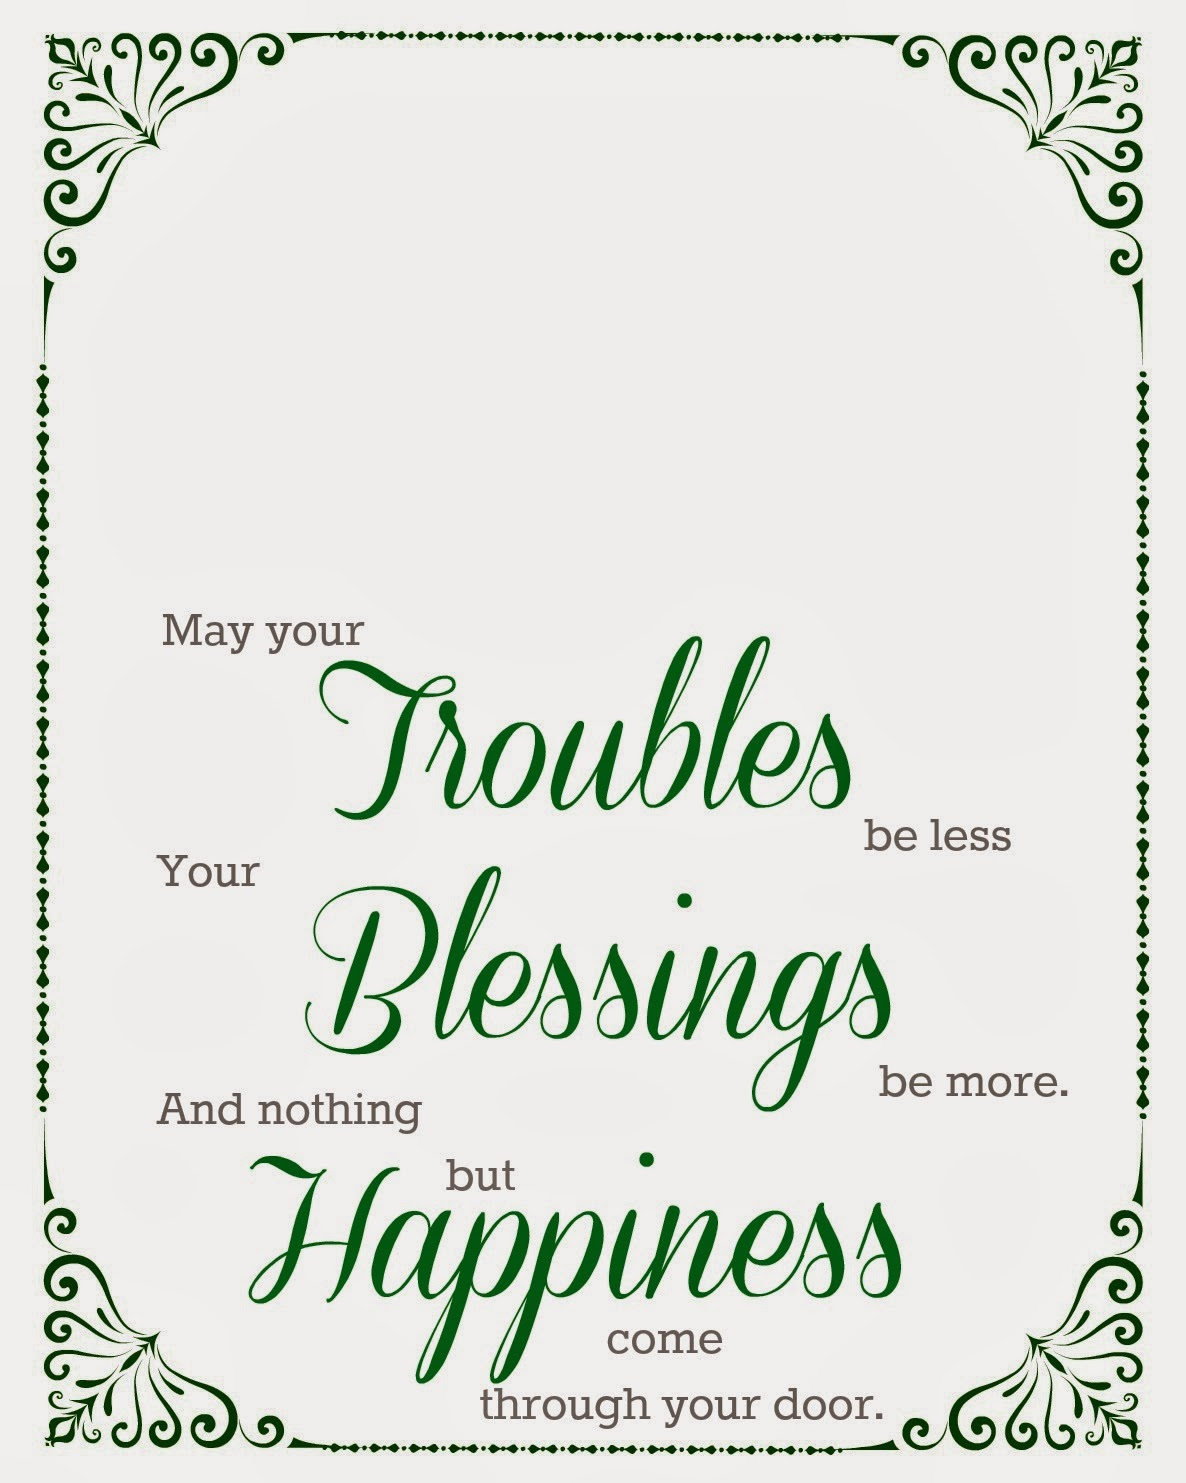 photo relating to Printable Irish Blessing titled Cunning within Crosby: Irish Blessing Printable